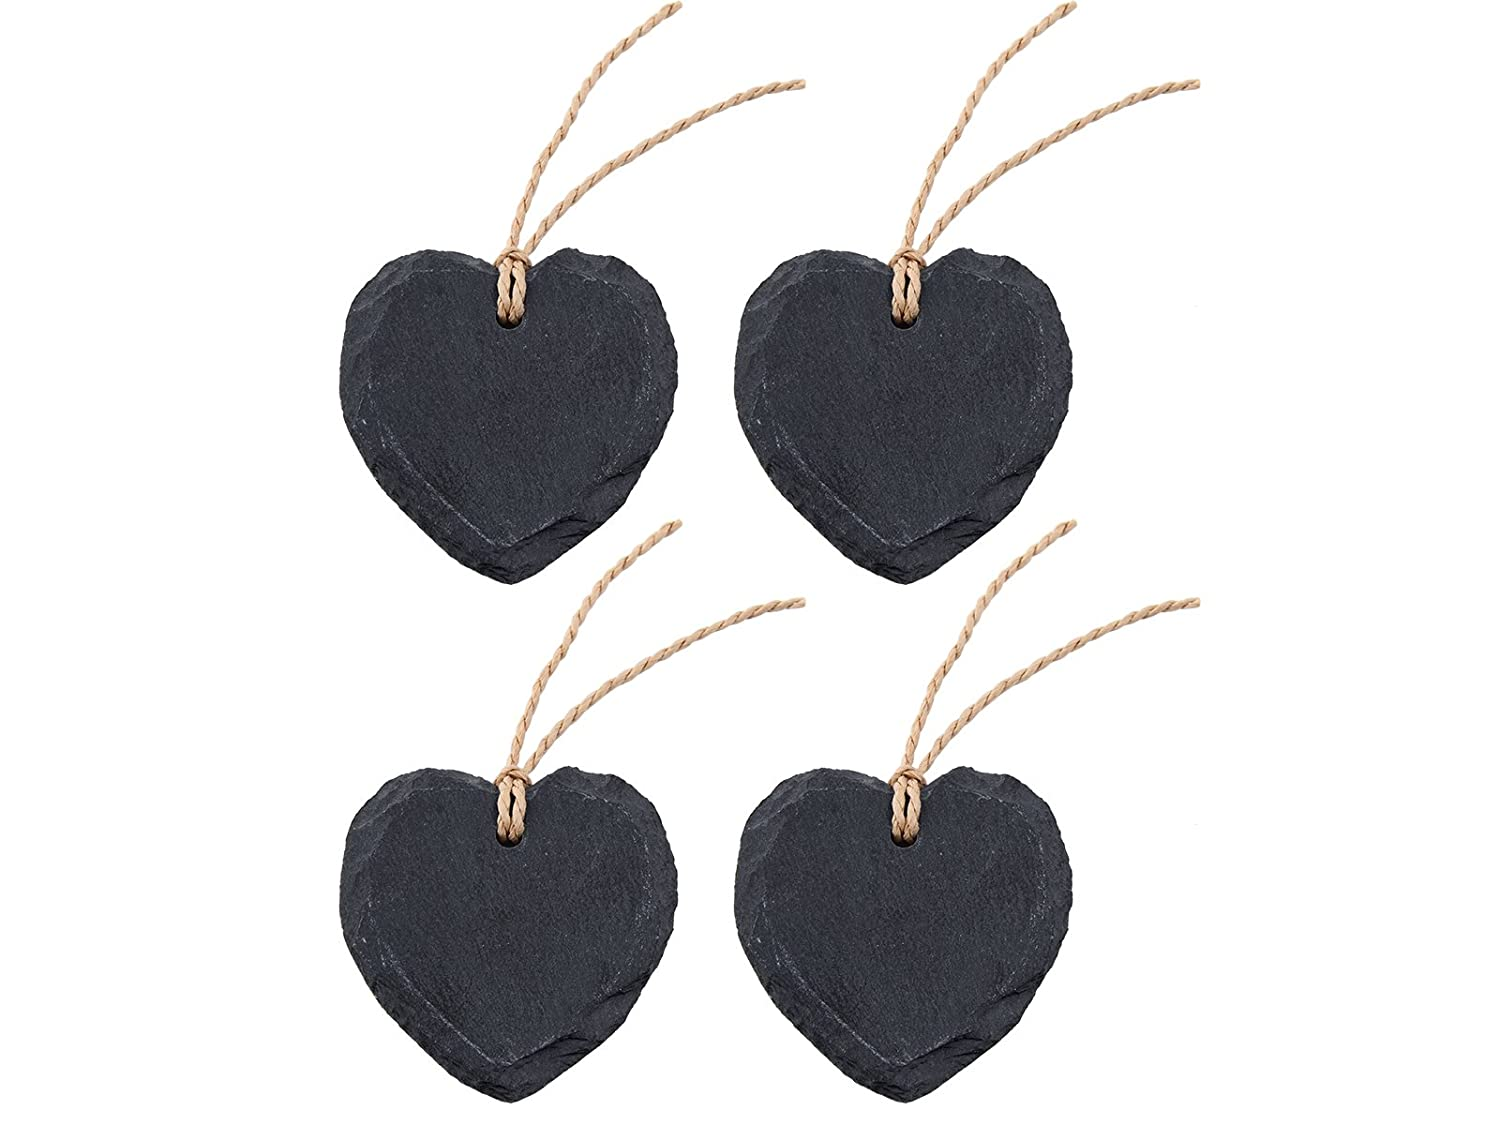 4-Piece Set of Heart-Shaped Slate Name Tags (with Chalk) by Creative Tops, 7 x 6.5 cm (2¾